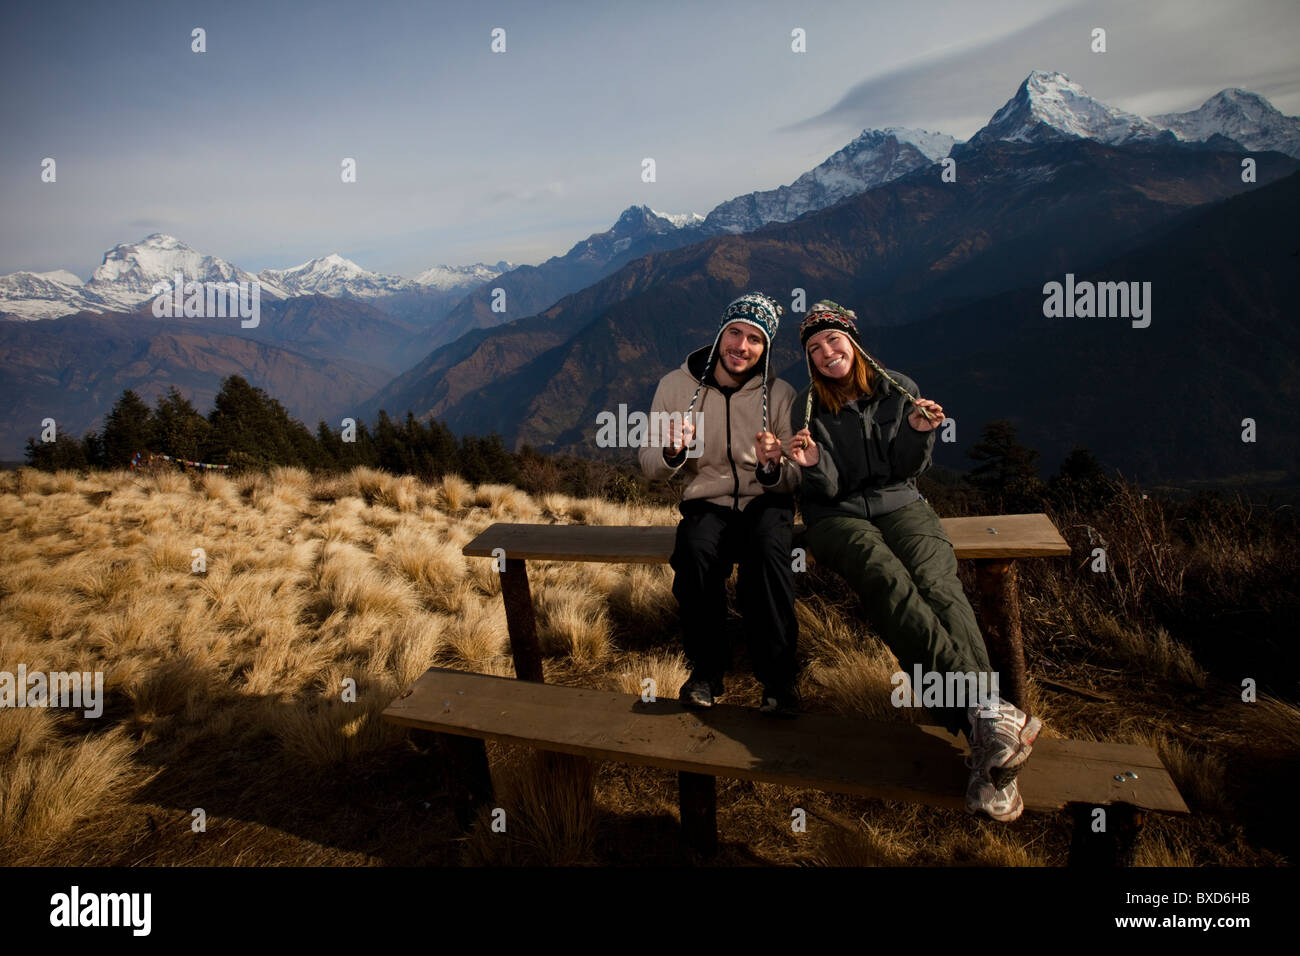 A trekking couple adjust their hats infront of the Annapurna mountain range in Nepal. - Stock Image